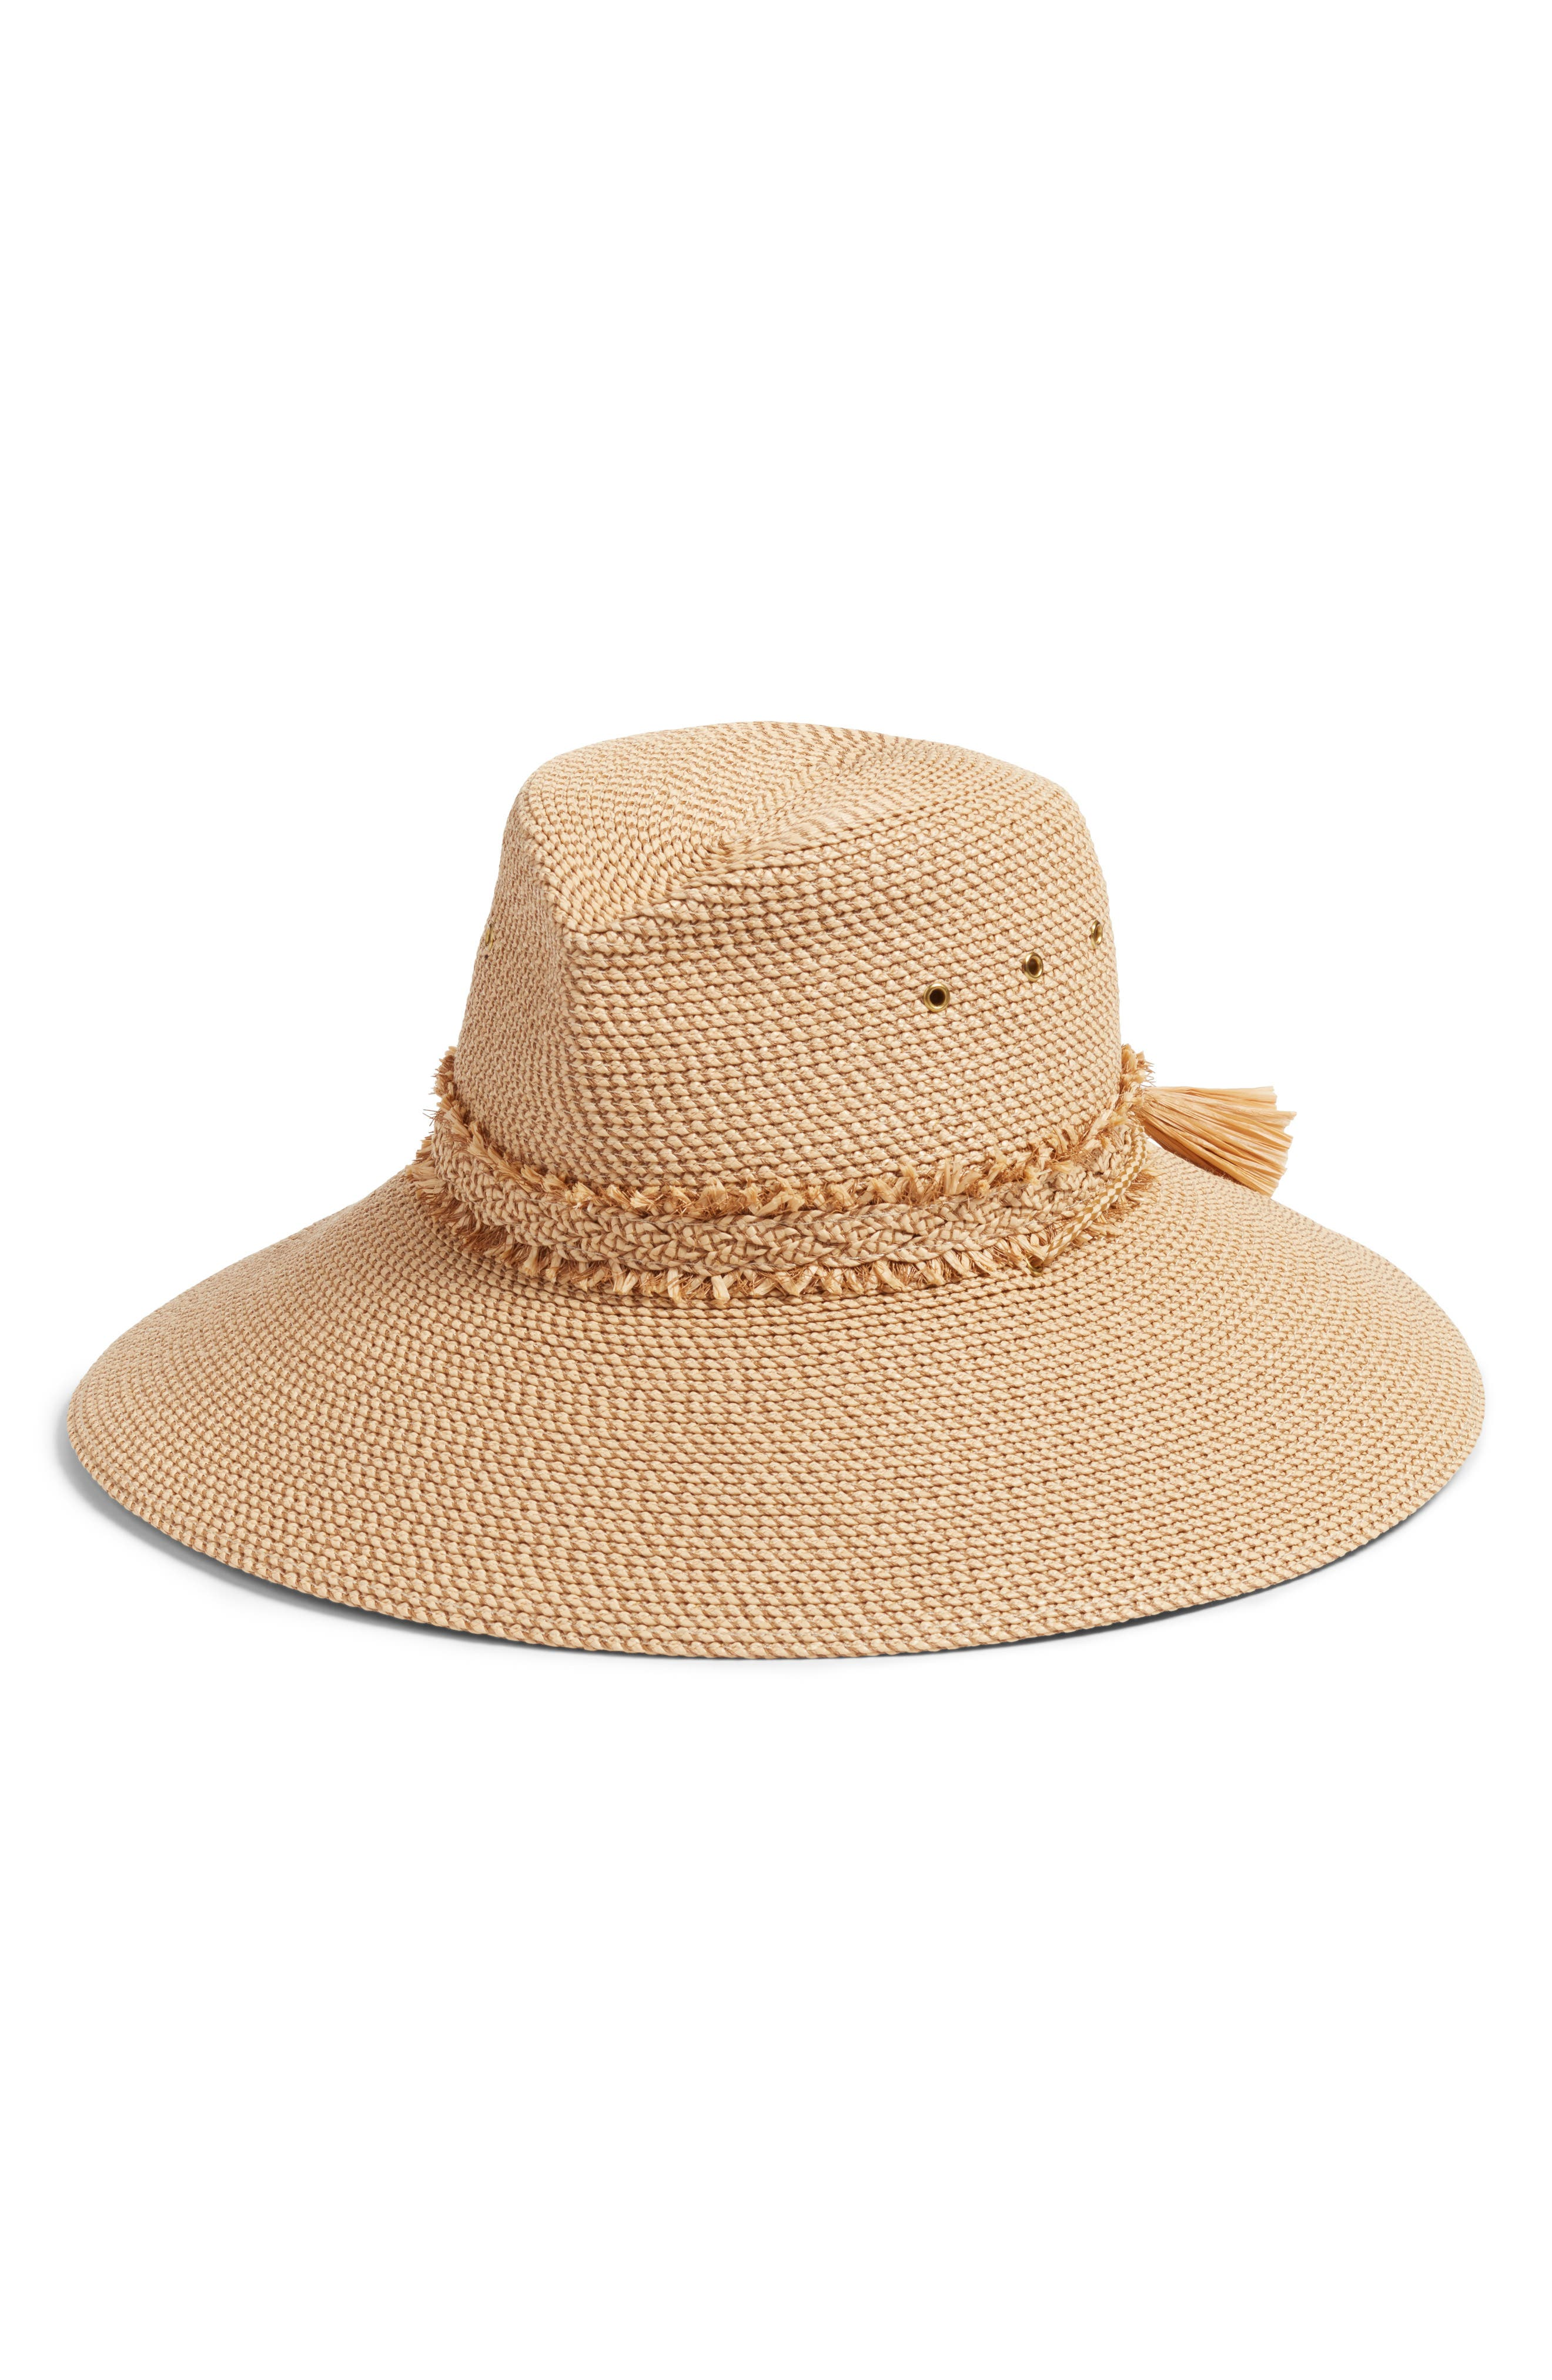 Voyager Squishee<sup>®</sup> Sun Hat,                             Main thumbnail 1, color,